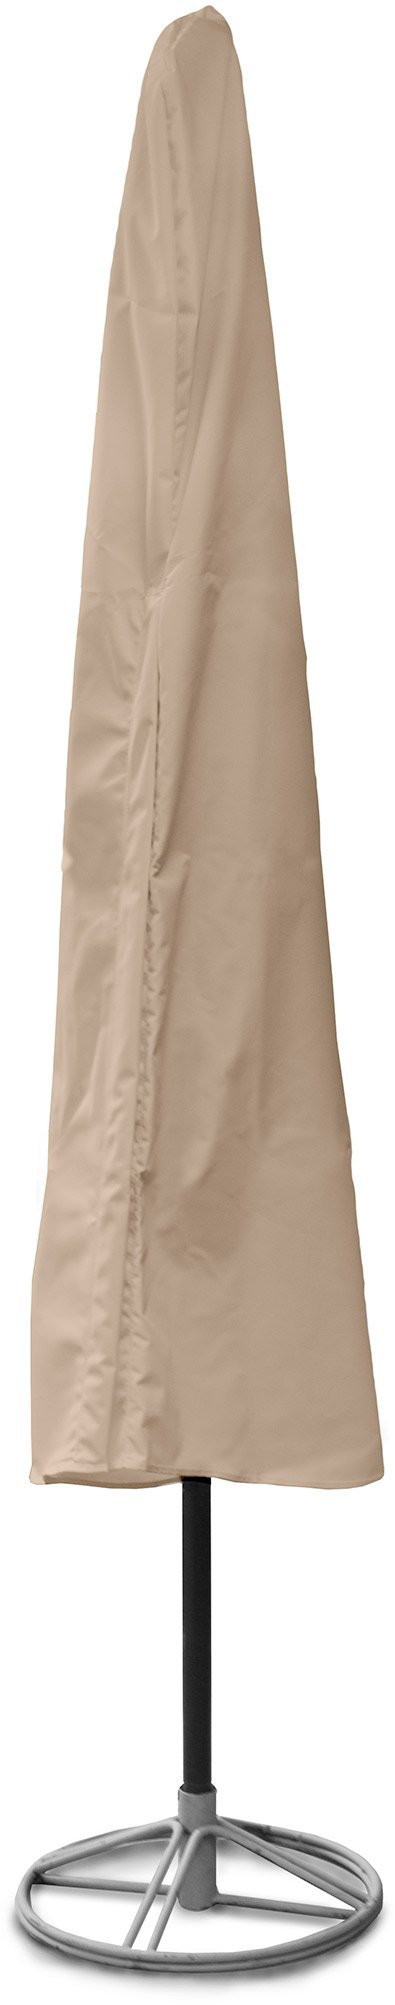 KoverRoos Weathermax 44282 11-Feet Umbrella Cover, 88-Inch Height by 48-Inch Circumference, Toast